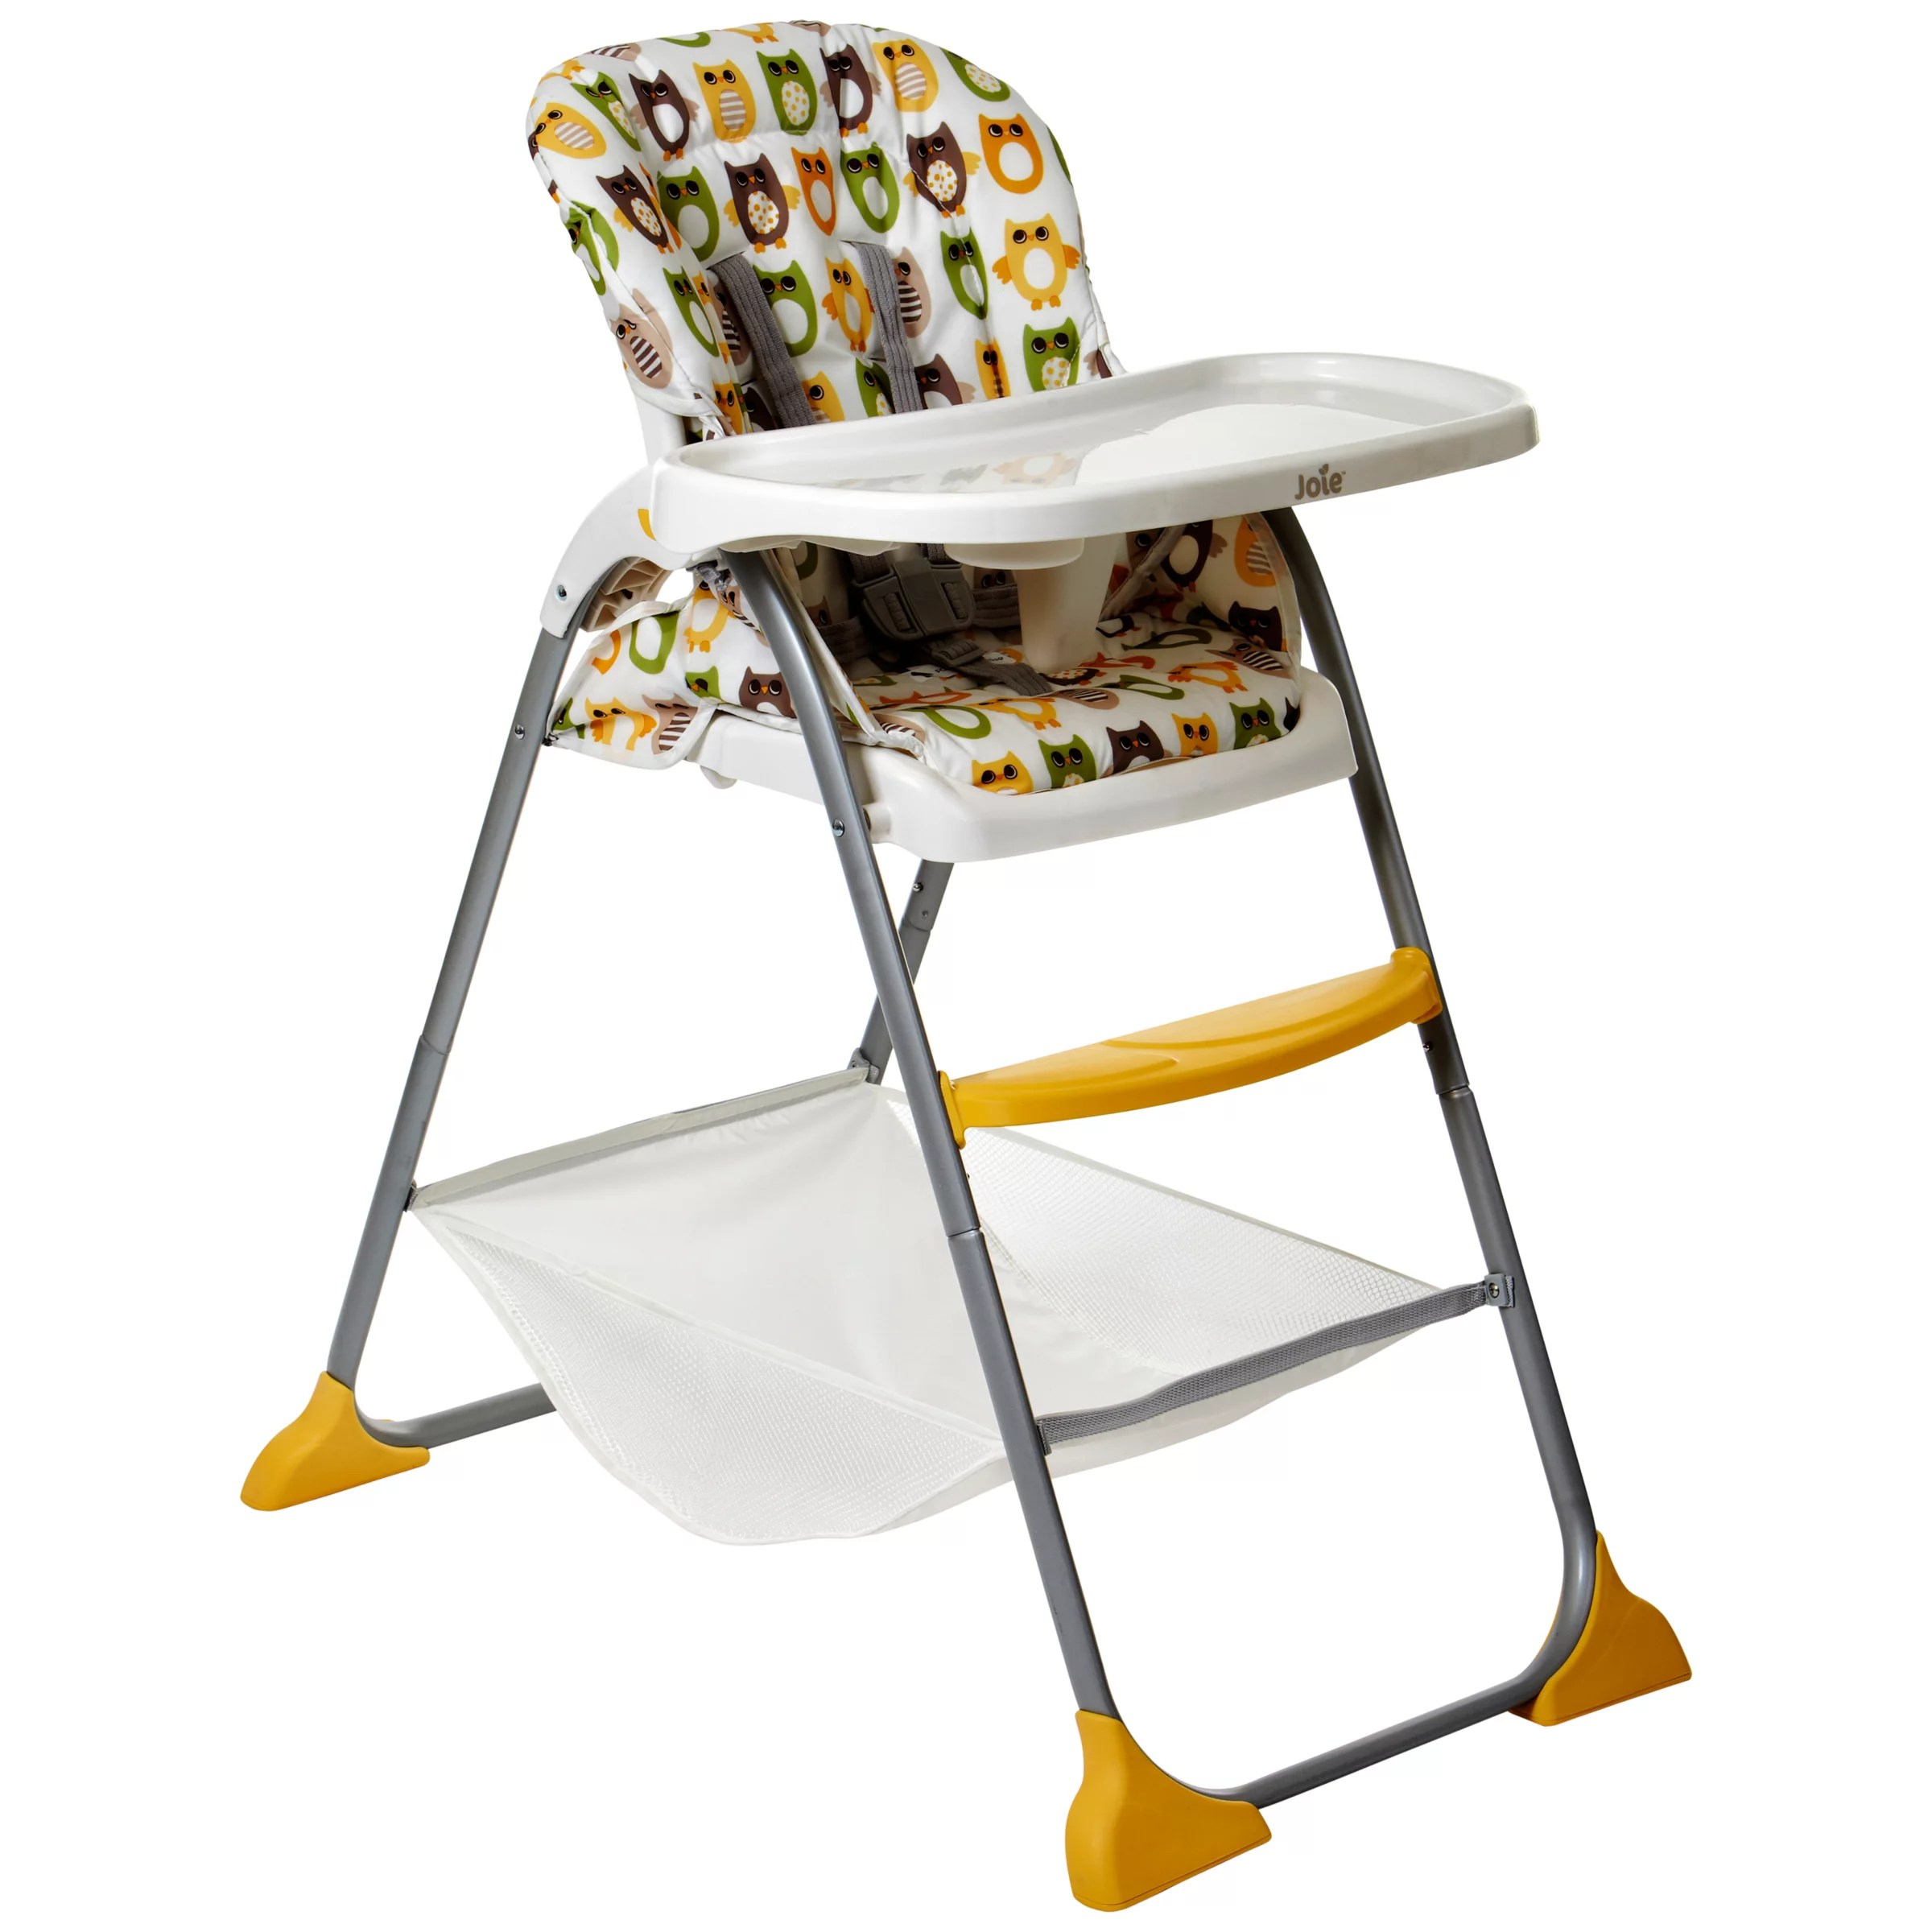 Owl High Chair Joie Baby Mimzy Snacker Highchair Owl At John Lewis